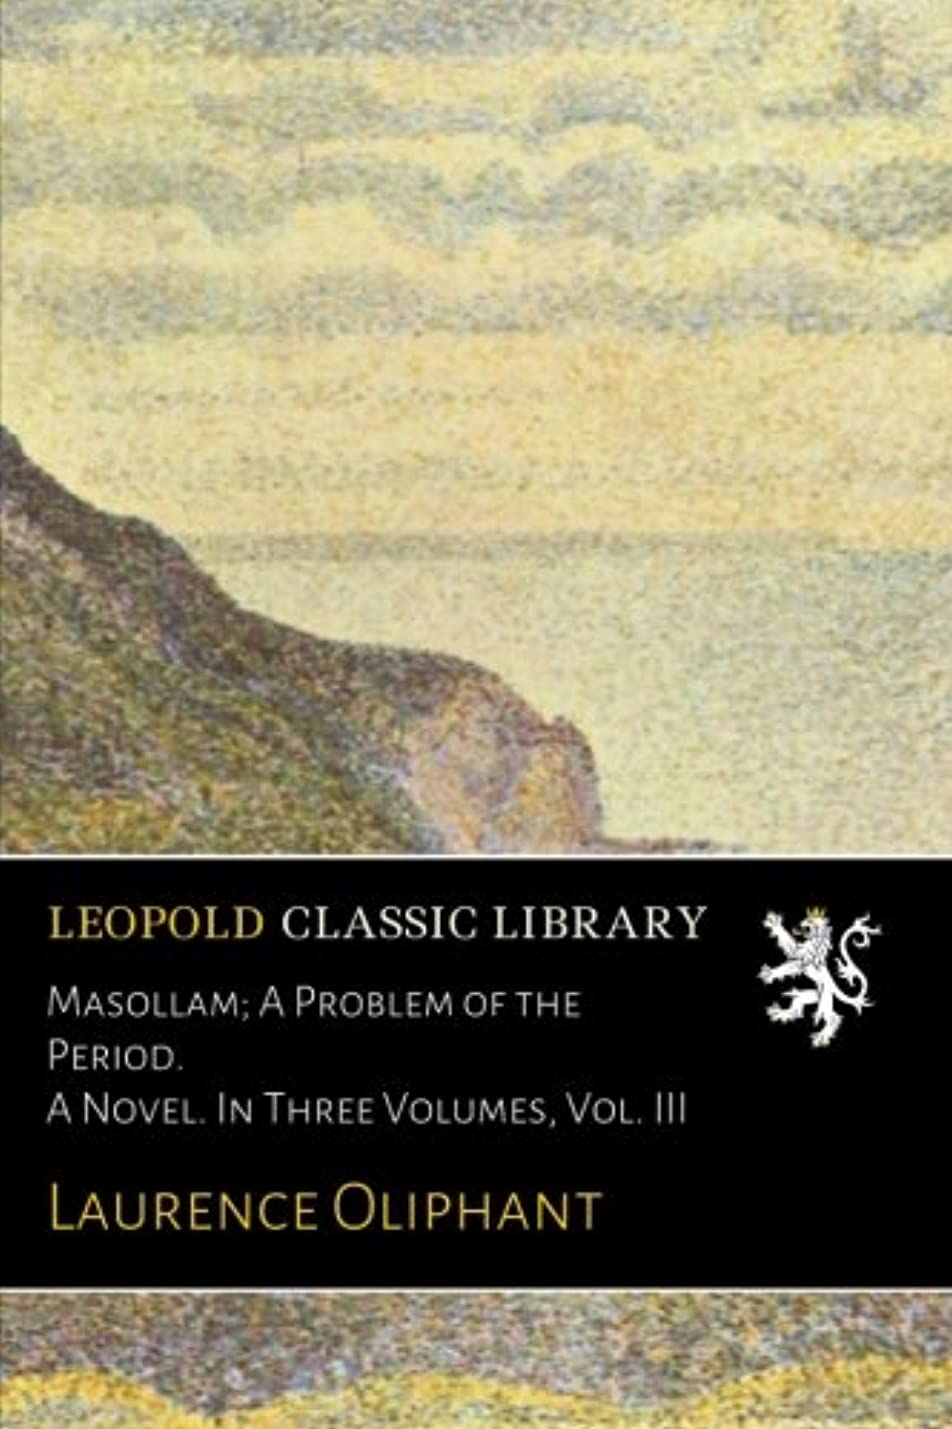 横たわるシェルターラッカスMasollam; A Problem of the Period. A Novel. In Three Volumes, Vol. III